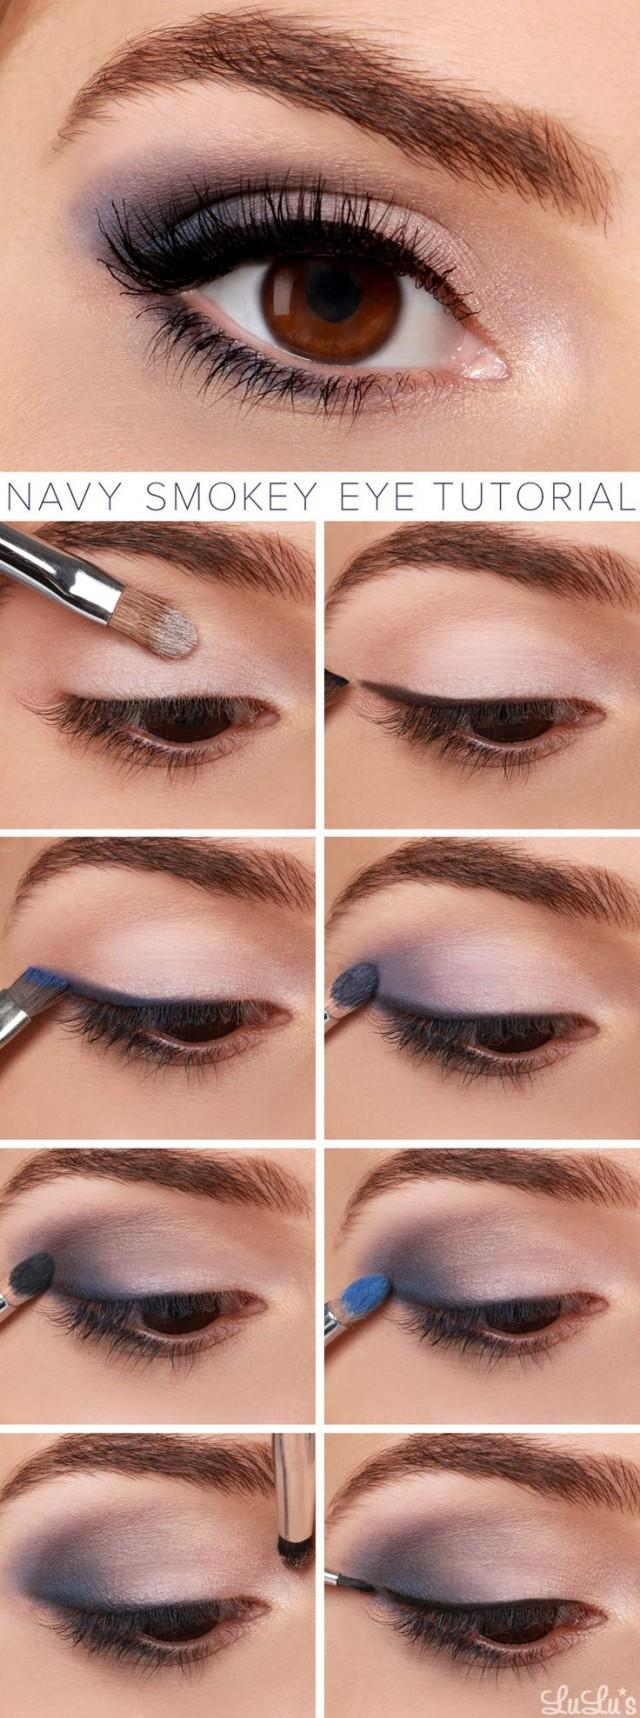 wedding photo - Lulus How-To: Navy Smokey Eye Makeup Tutorial